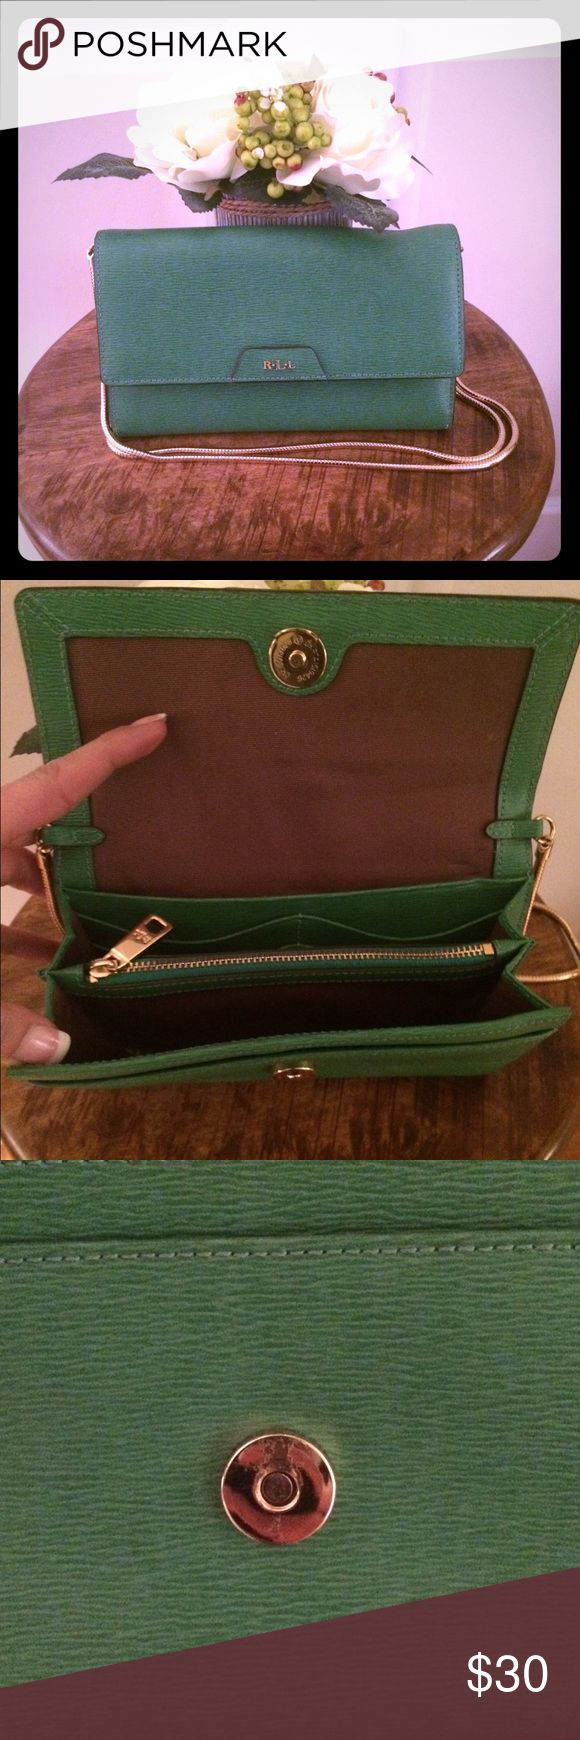 Ralp Lauren Green Crossbody with Gold Chain Ralph Lauren green crossbody purse with gold chain! Purse is in good condition and used a couple of times. Snaps in front of purse to close! Inside of purse has a middle pocket that zips, rear of inside of purse has a pocket with 6 credit card slots, a pocket in front and pocket on backside of purse. Gold snap has a few minor scratches which I showed in picture! Dimensions are 7.5W and 4.5L.  Message me with any questions! ❤️ Ralph Lauren Bags…